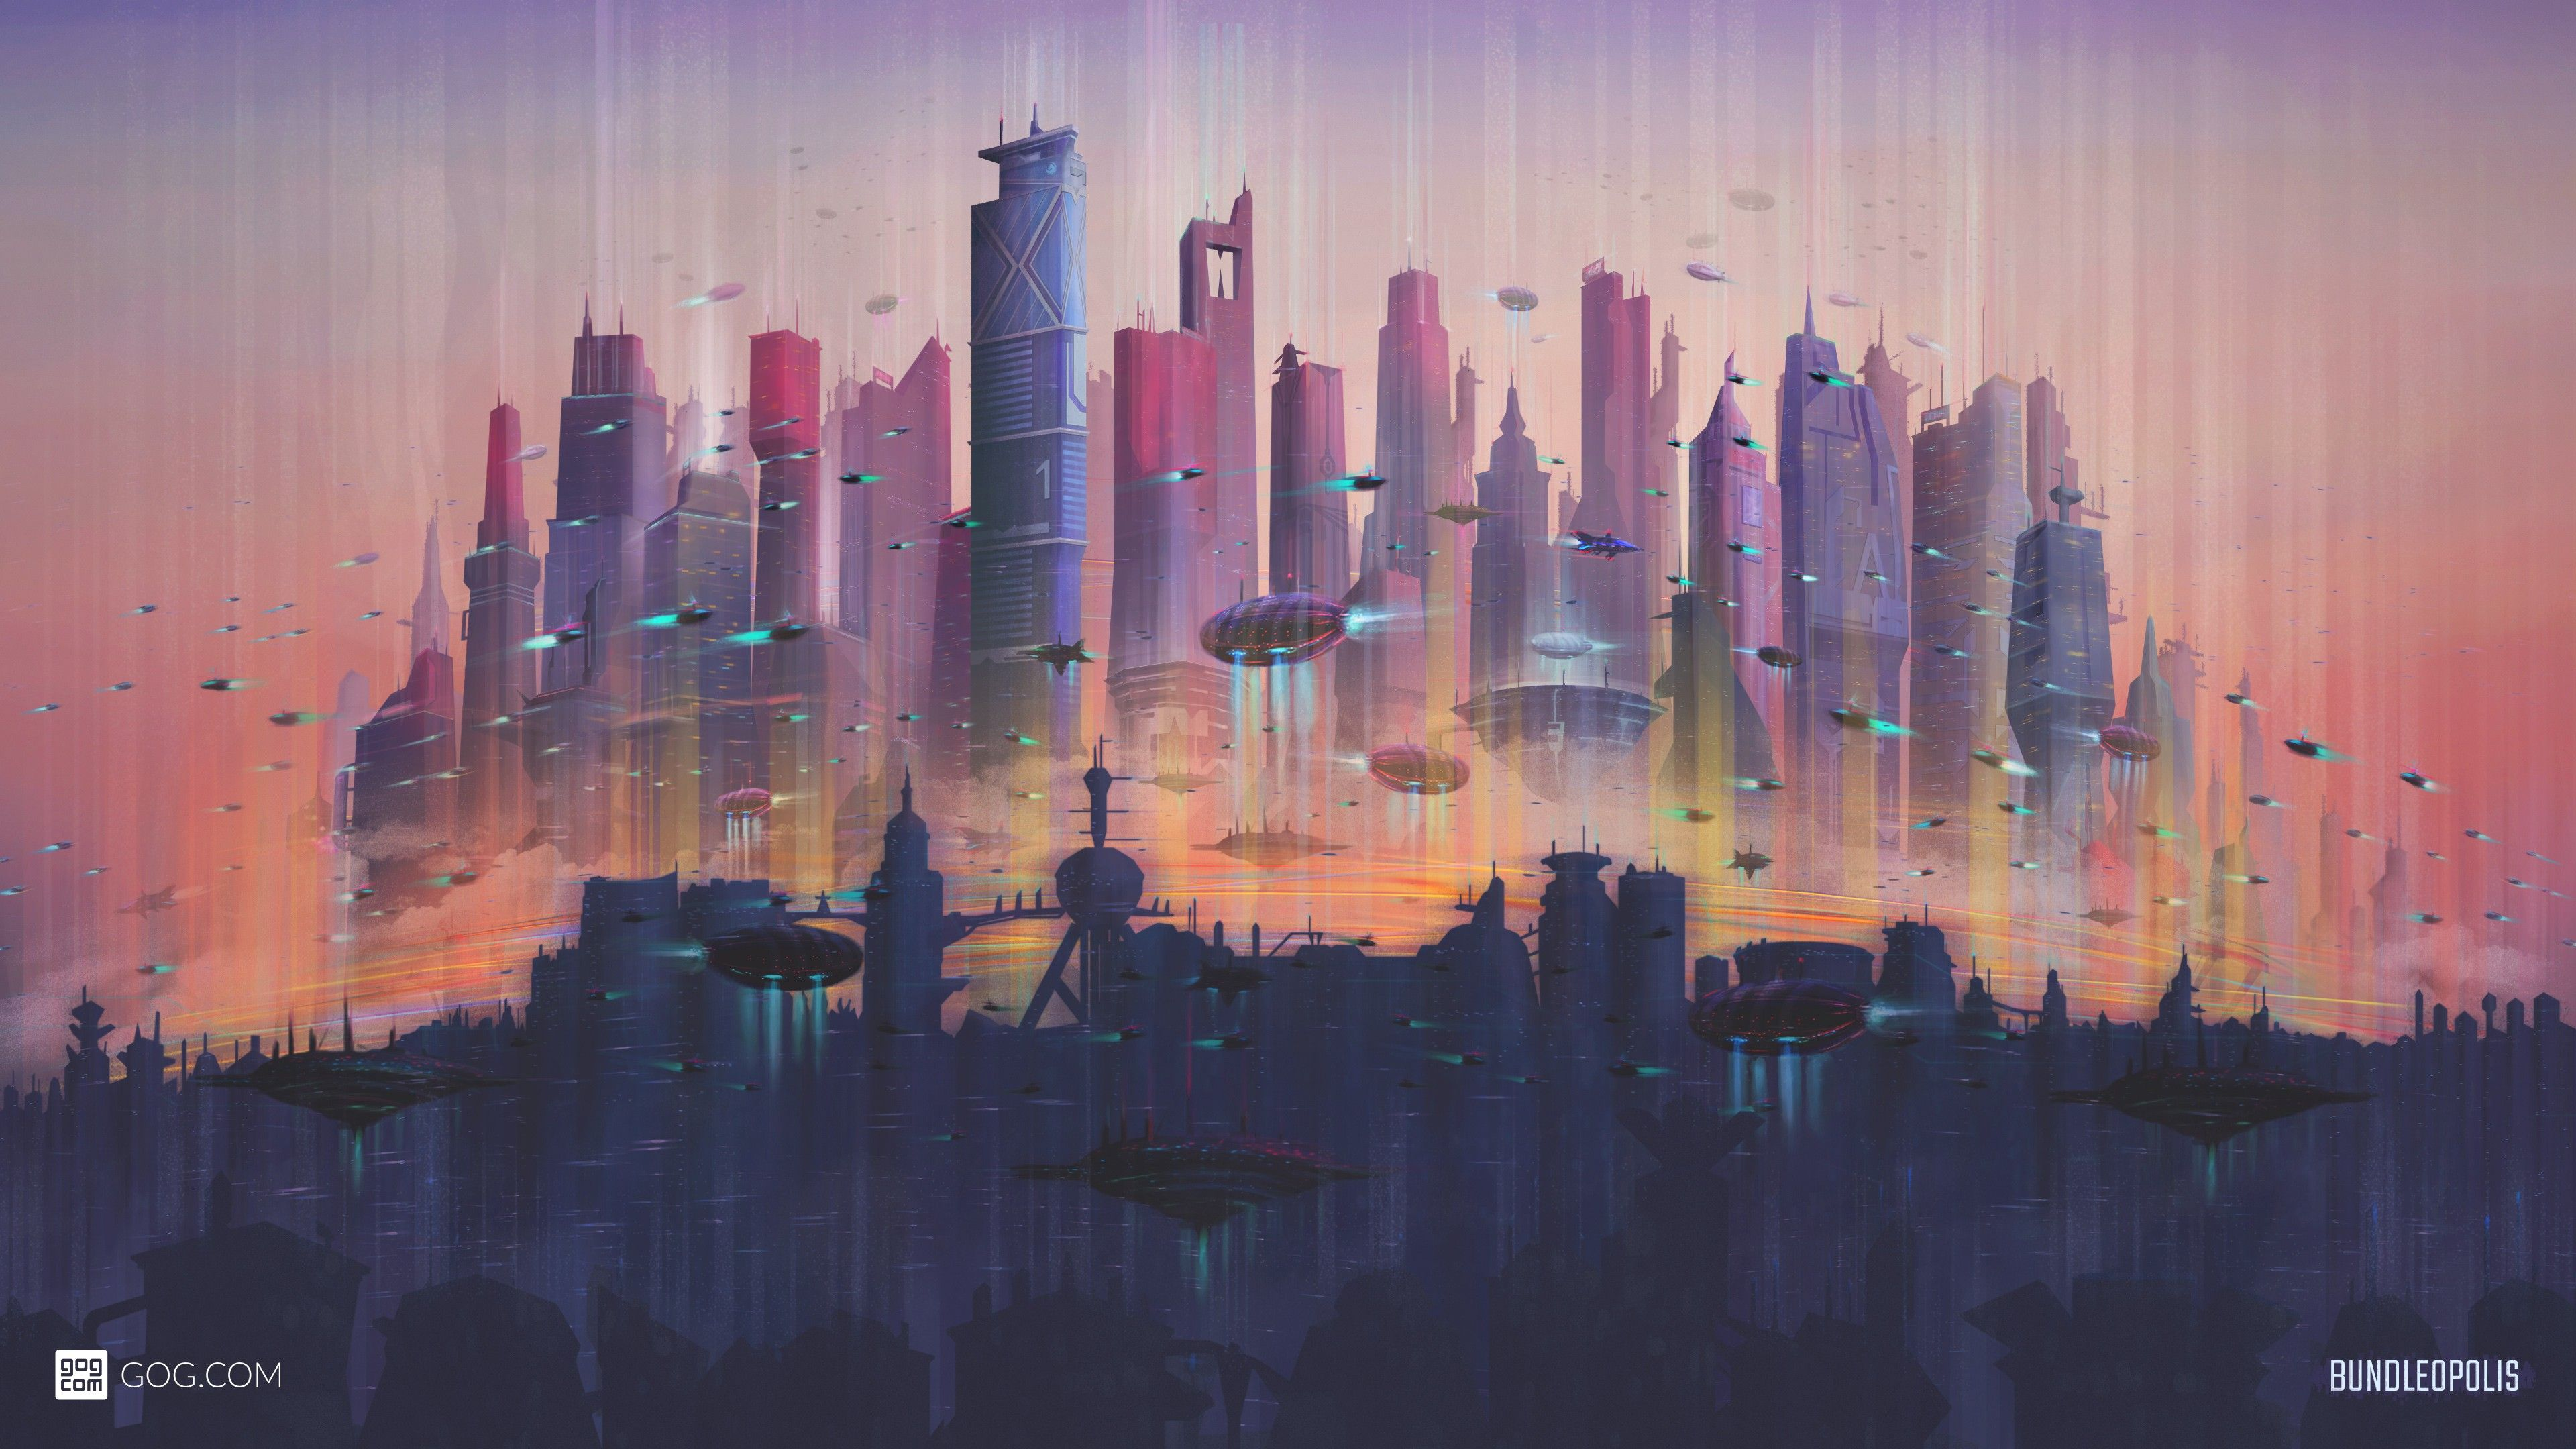 Future Cityscape 4k Wallpapers Hd Wallpapers Cityscape Wallpaper Future Wallpaper Uhd Wallpaper